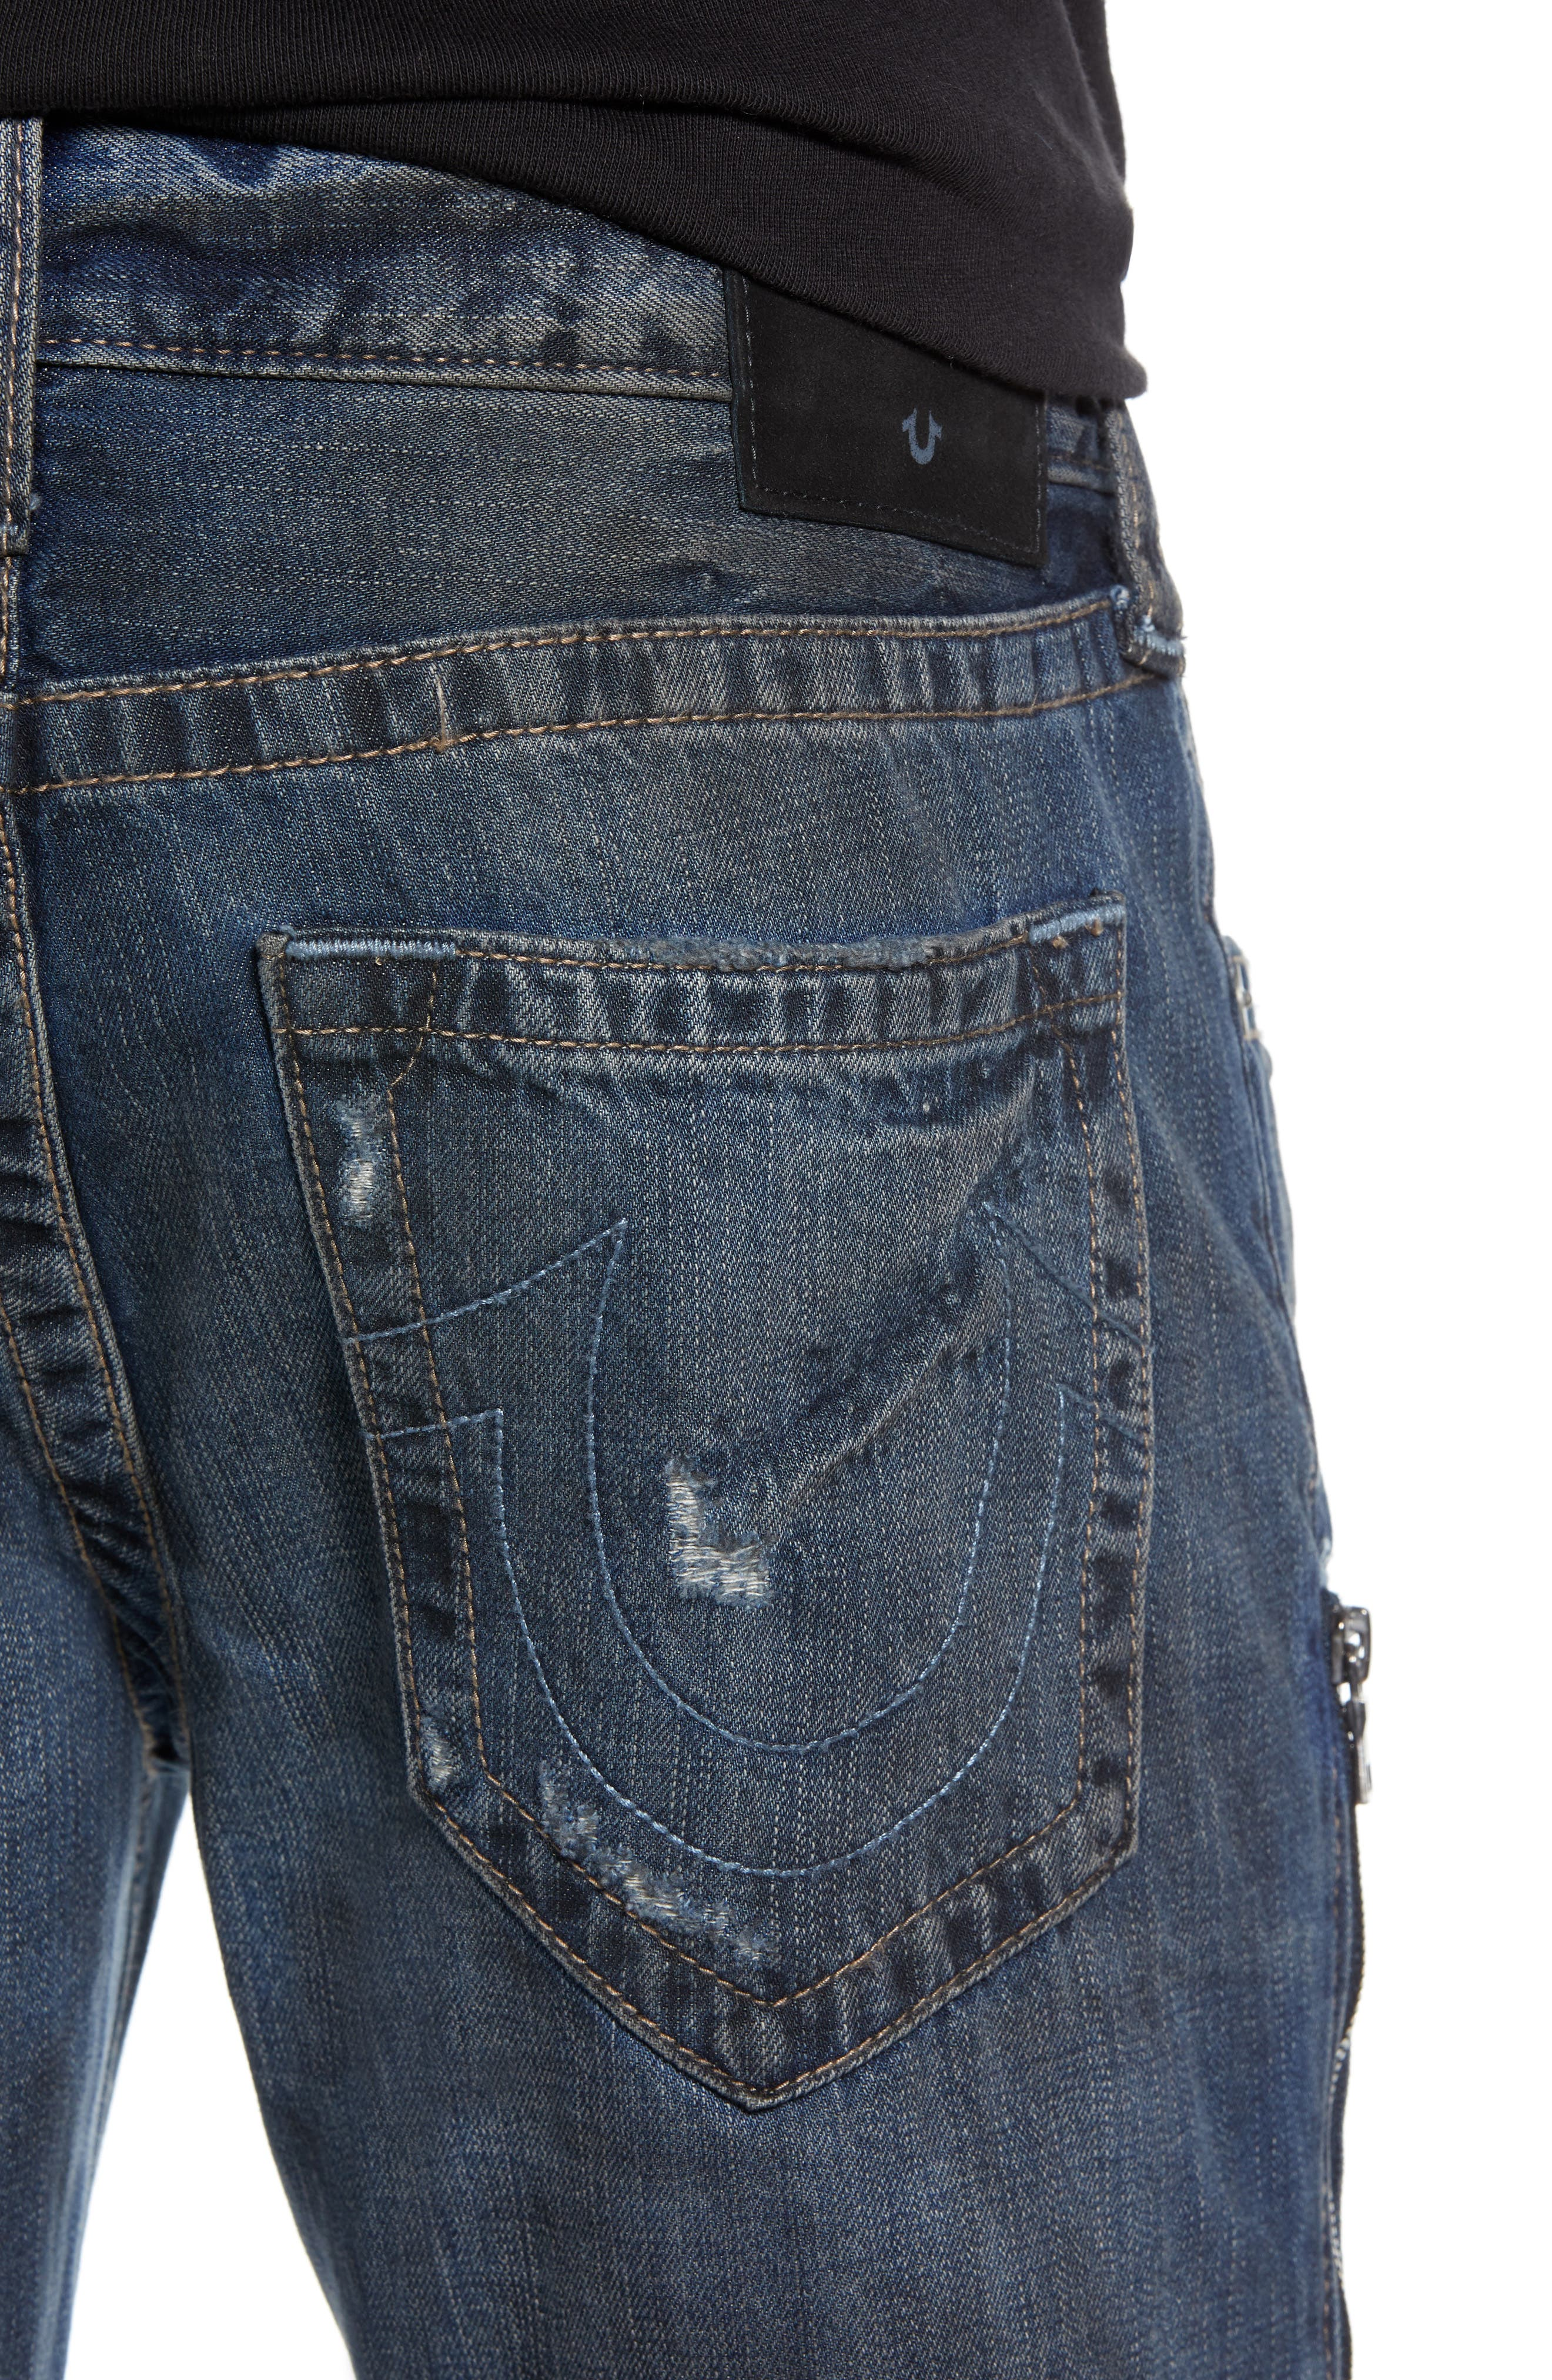 Rocco Distressed Skinny Fit Jeans,                             Alternate thumbnail 4, color,                             MIDNIGHT STORM